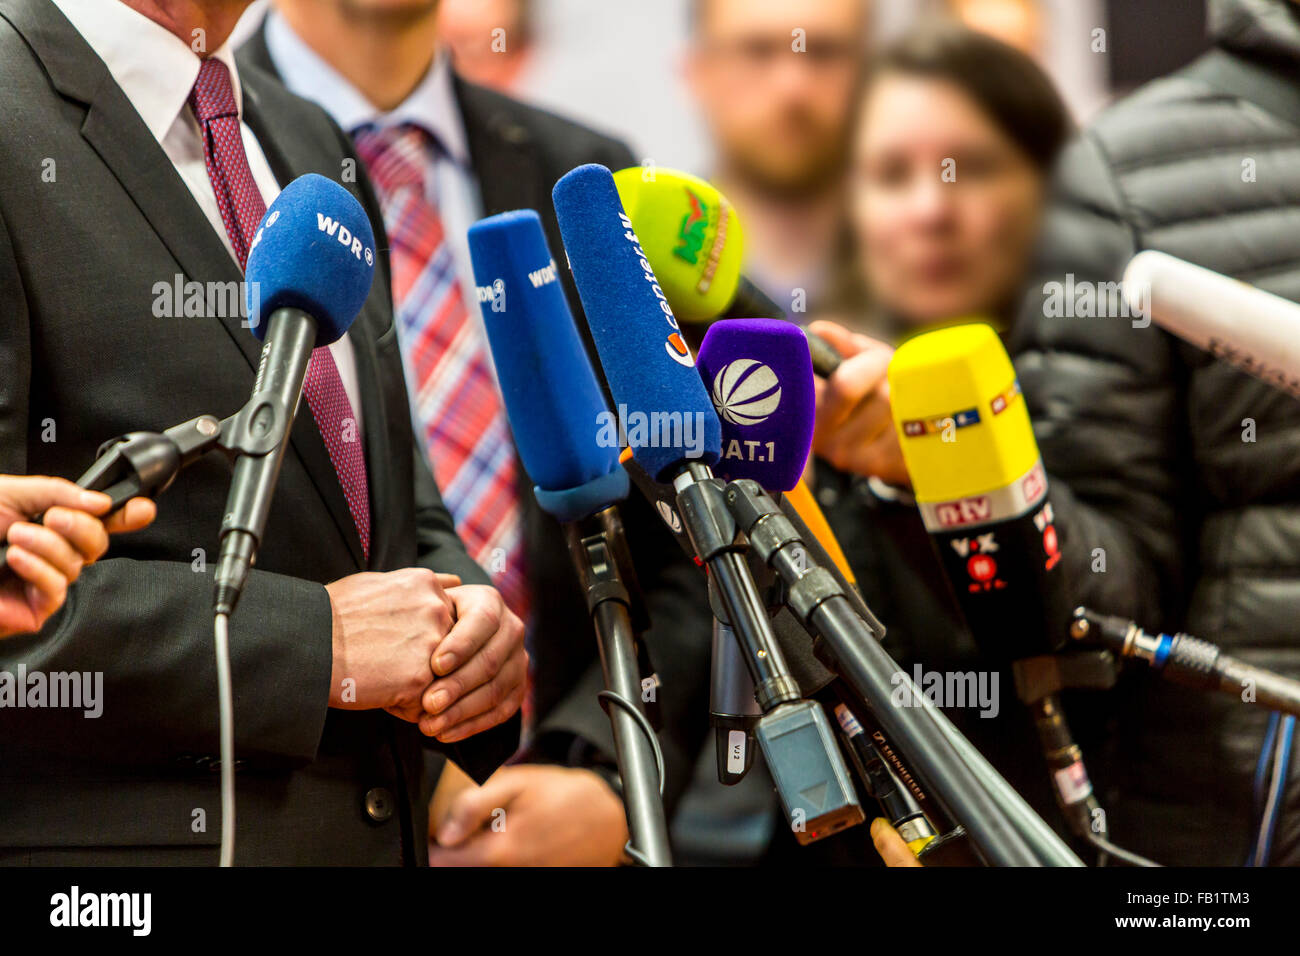 Microphones of different TV and radio stations during a press conference, media, - Stock Image